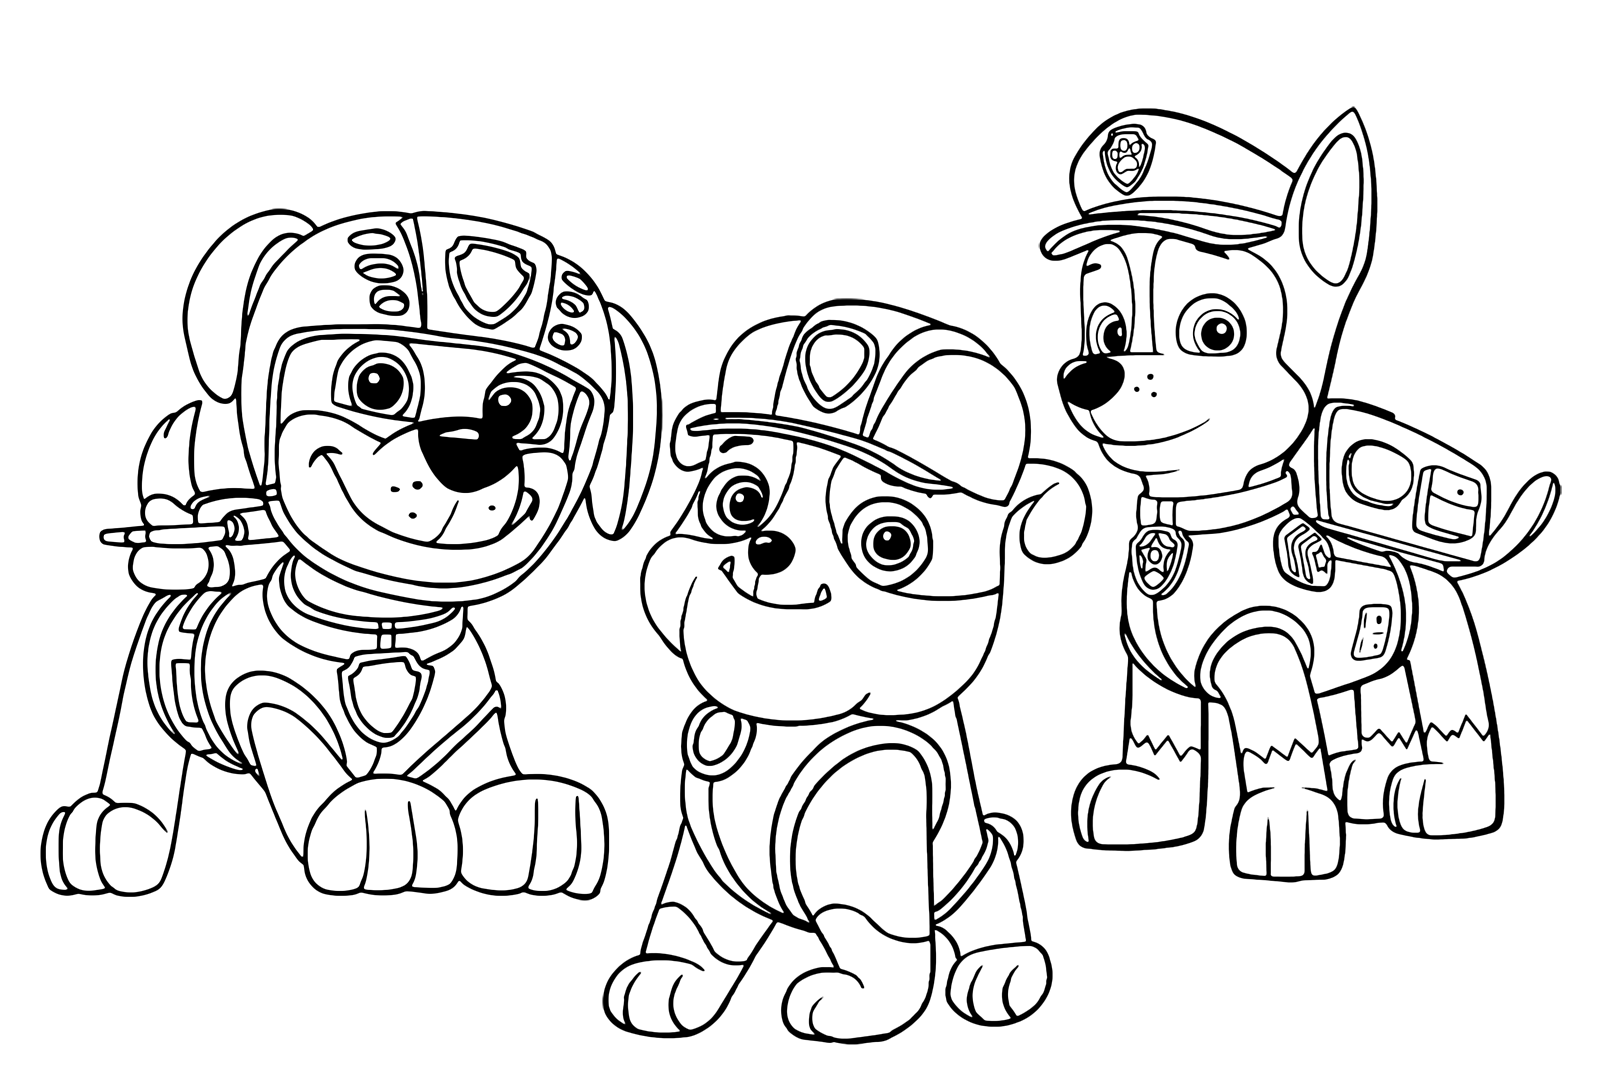 paw patrol zuma rubble and together